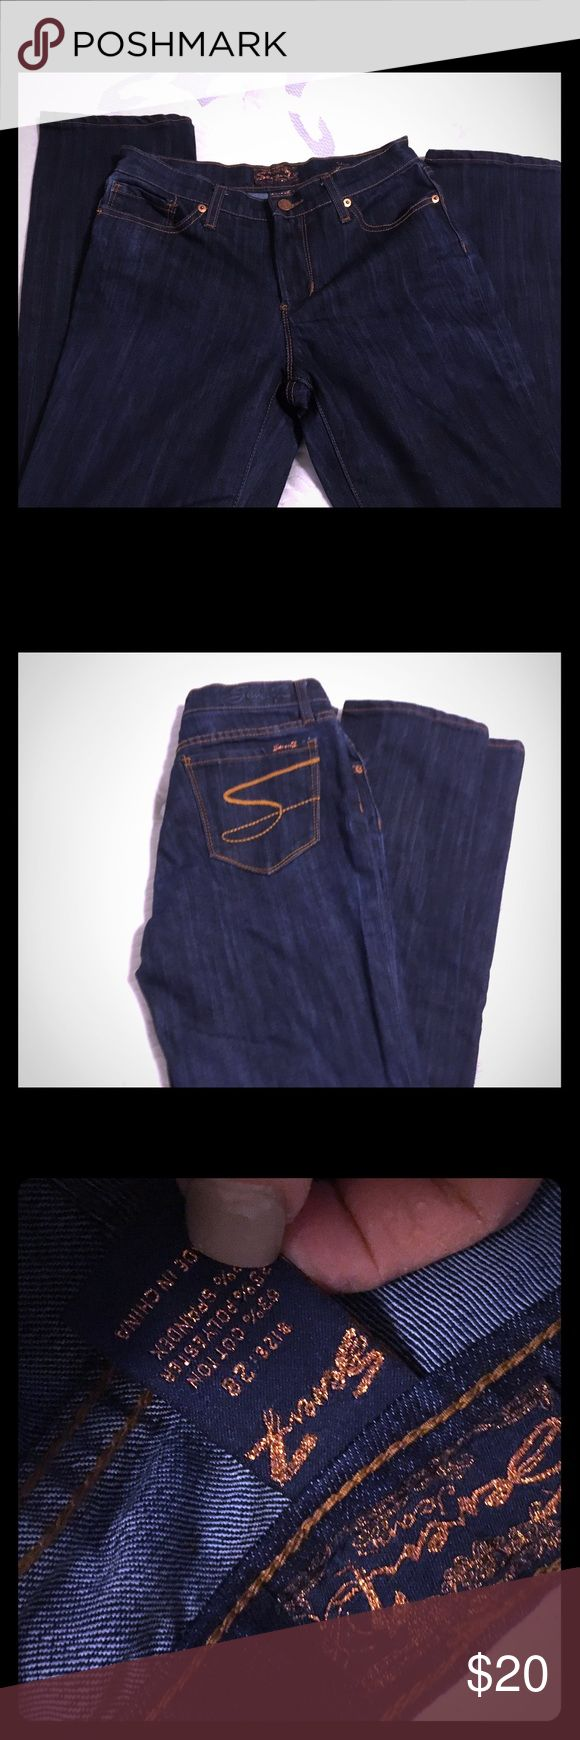 Seven jeans Seven jeans worn once washed once dark slim fit straight leg sz 28 💙 Seven7 Jeans Straight Leg